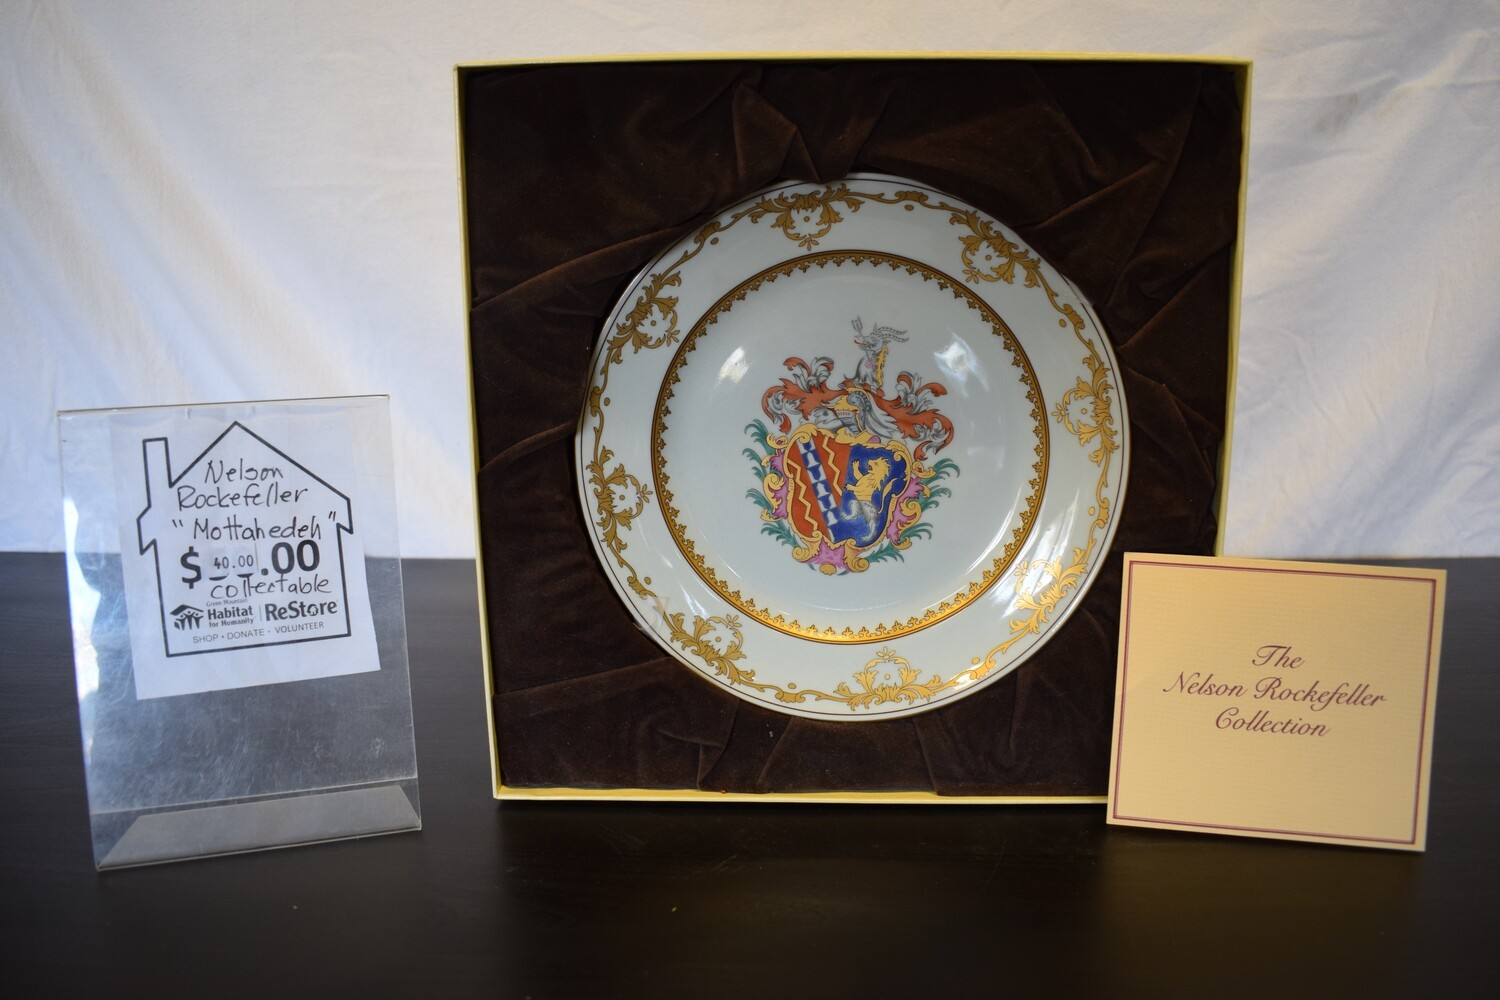 """Nelson Rockefeller """"Mottahedeh"""" Collectible Plate"""